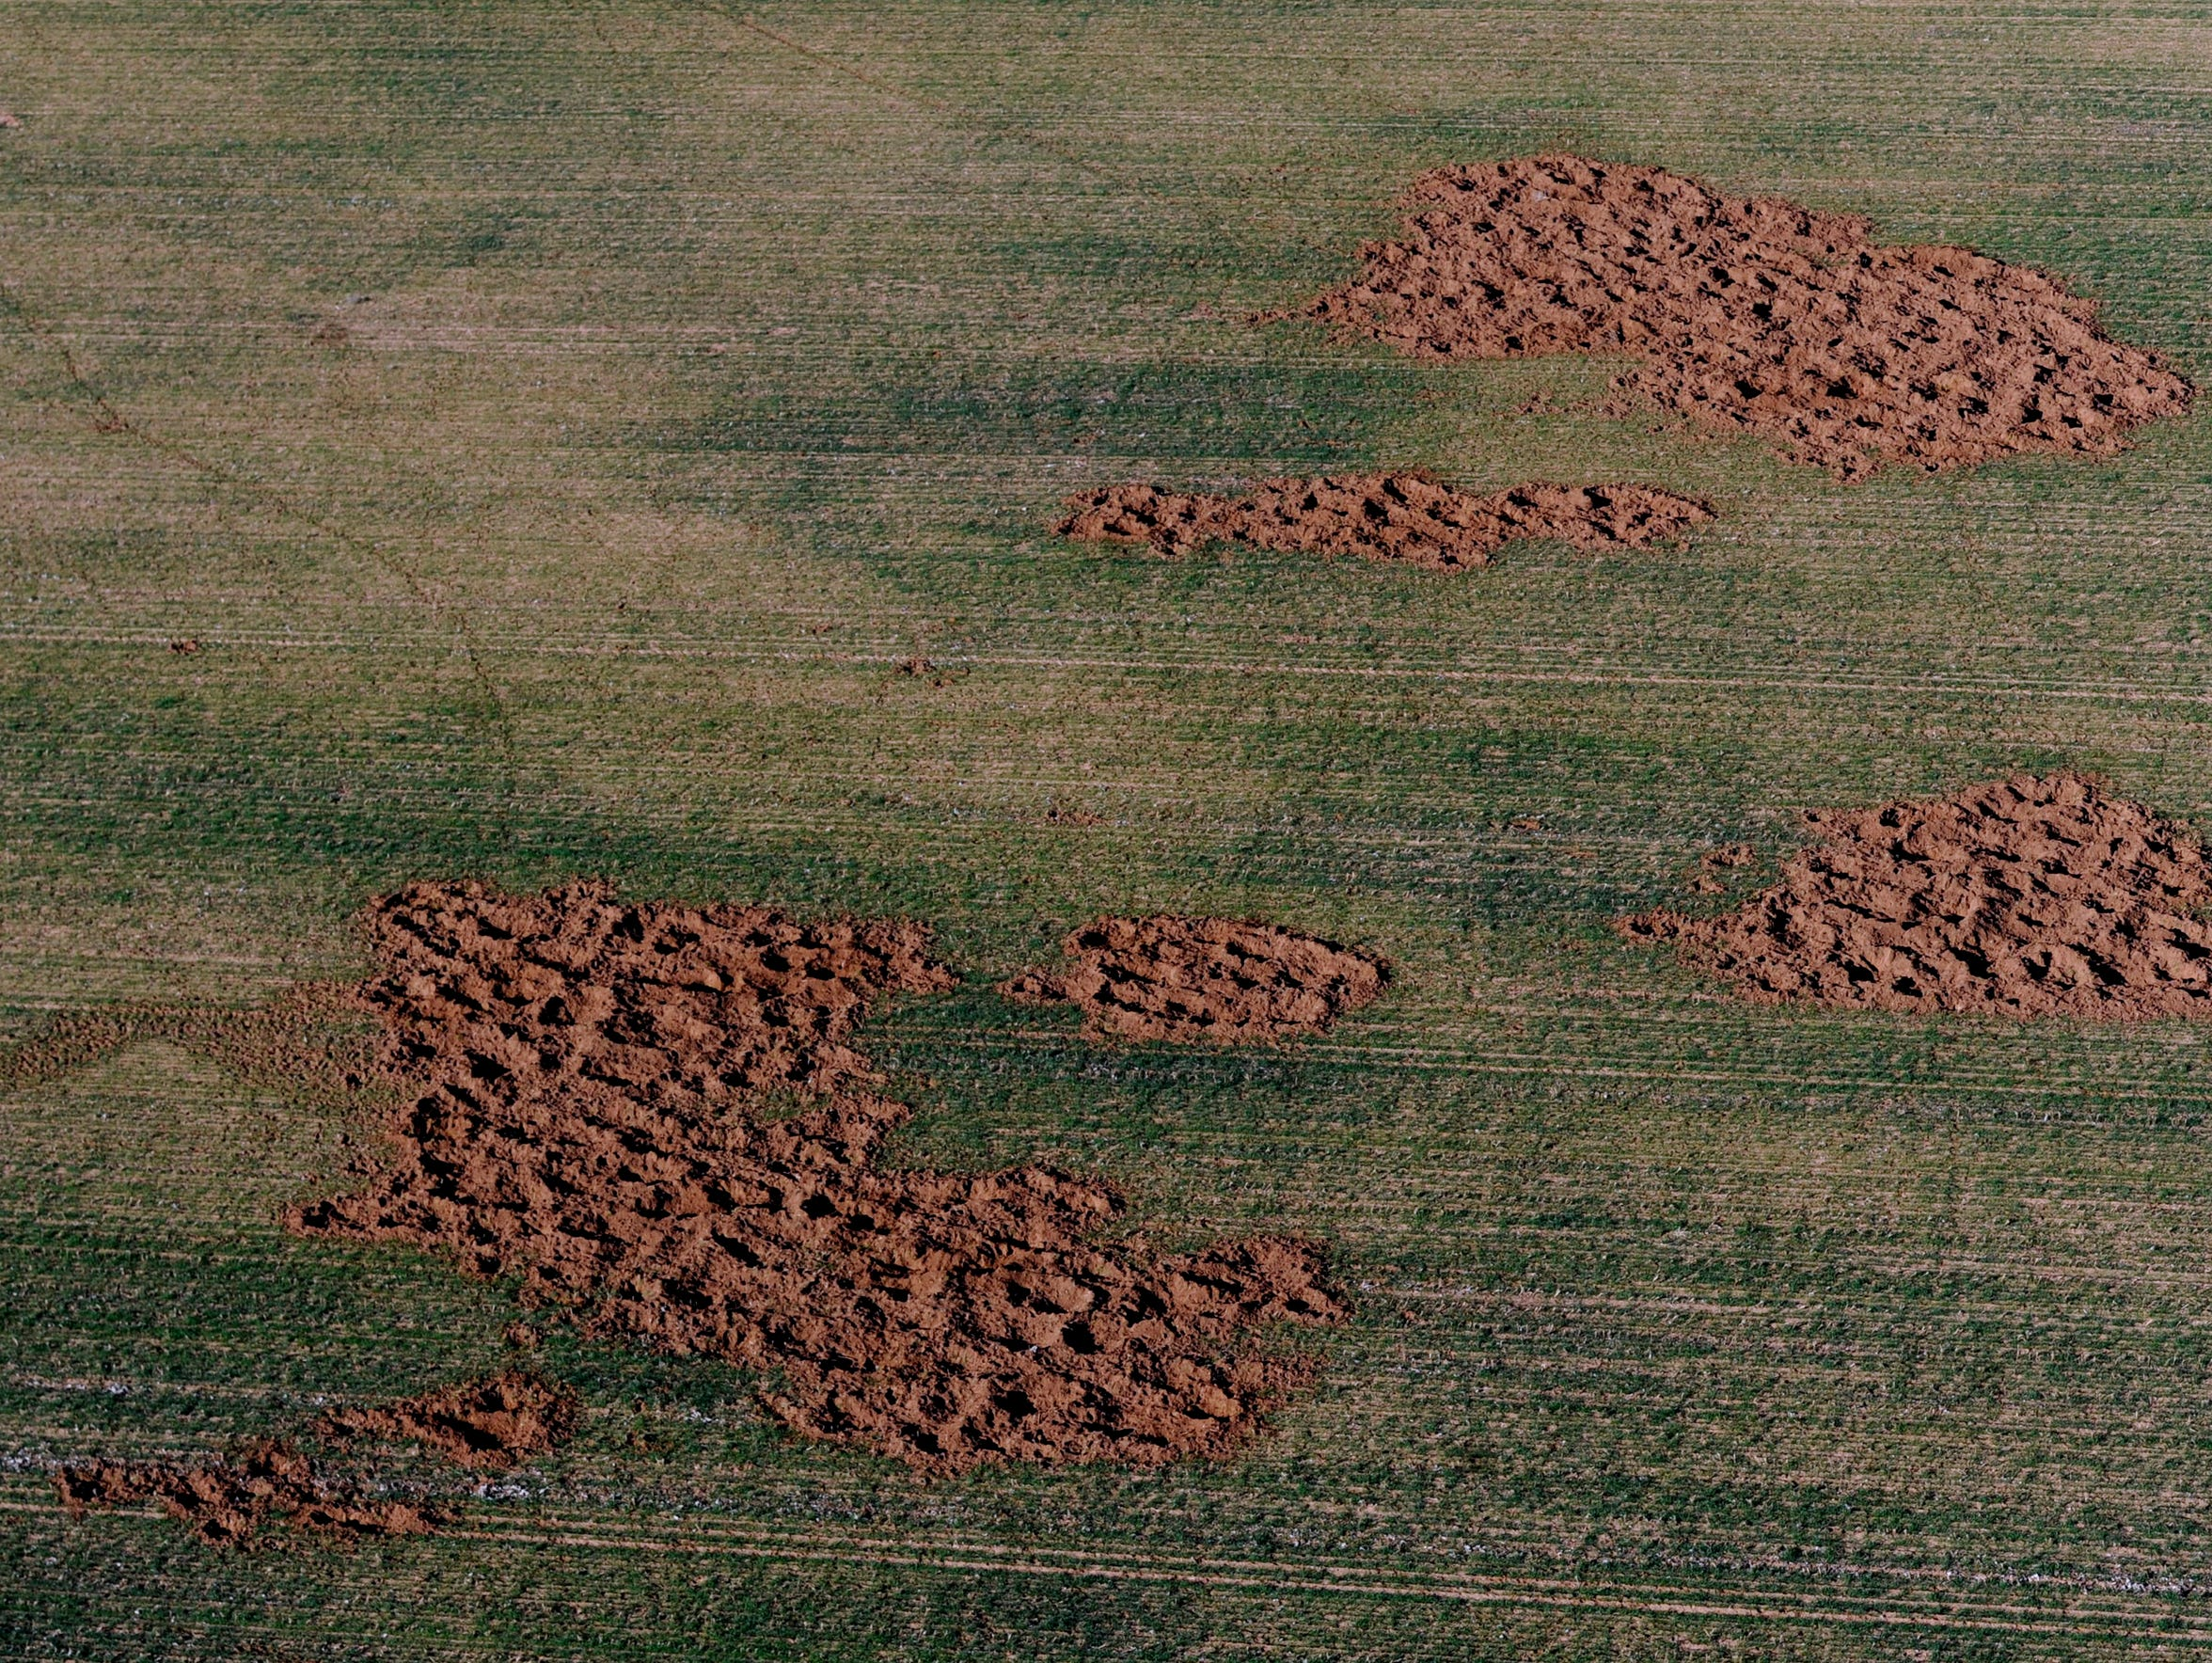 Hog damage in a field in Fisher County on Feb. 25.